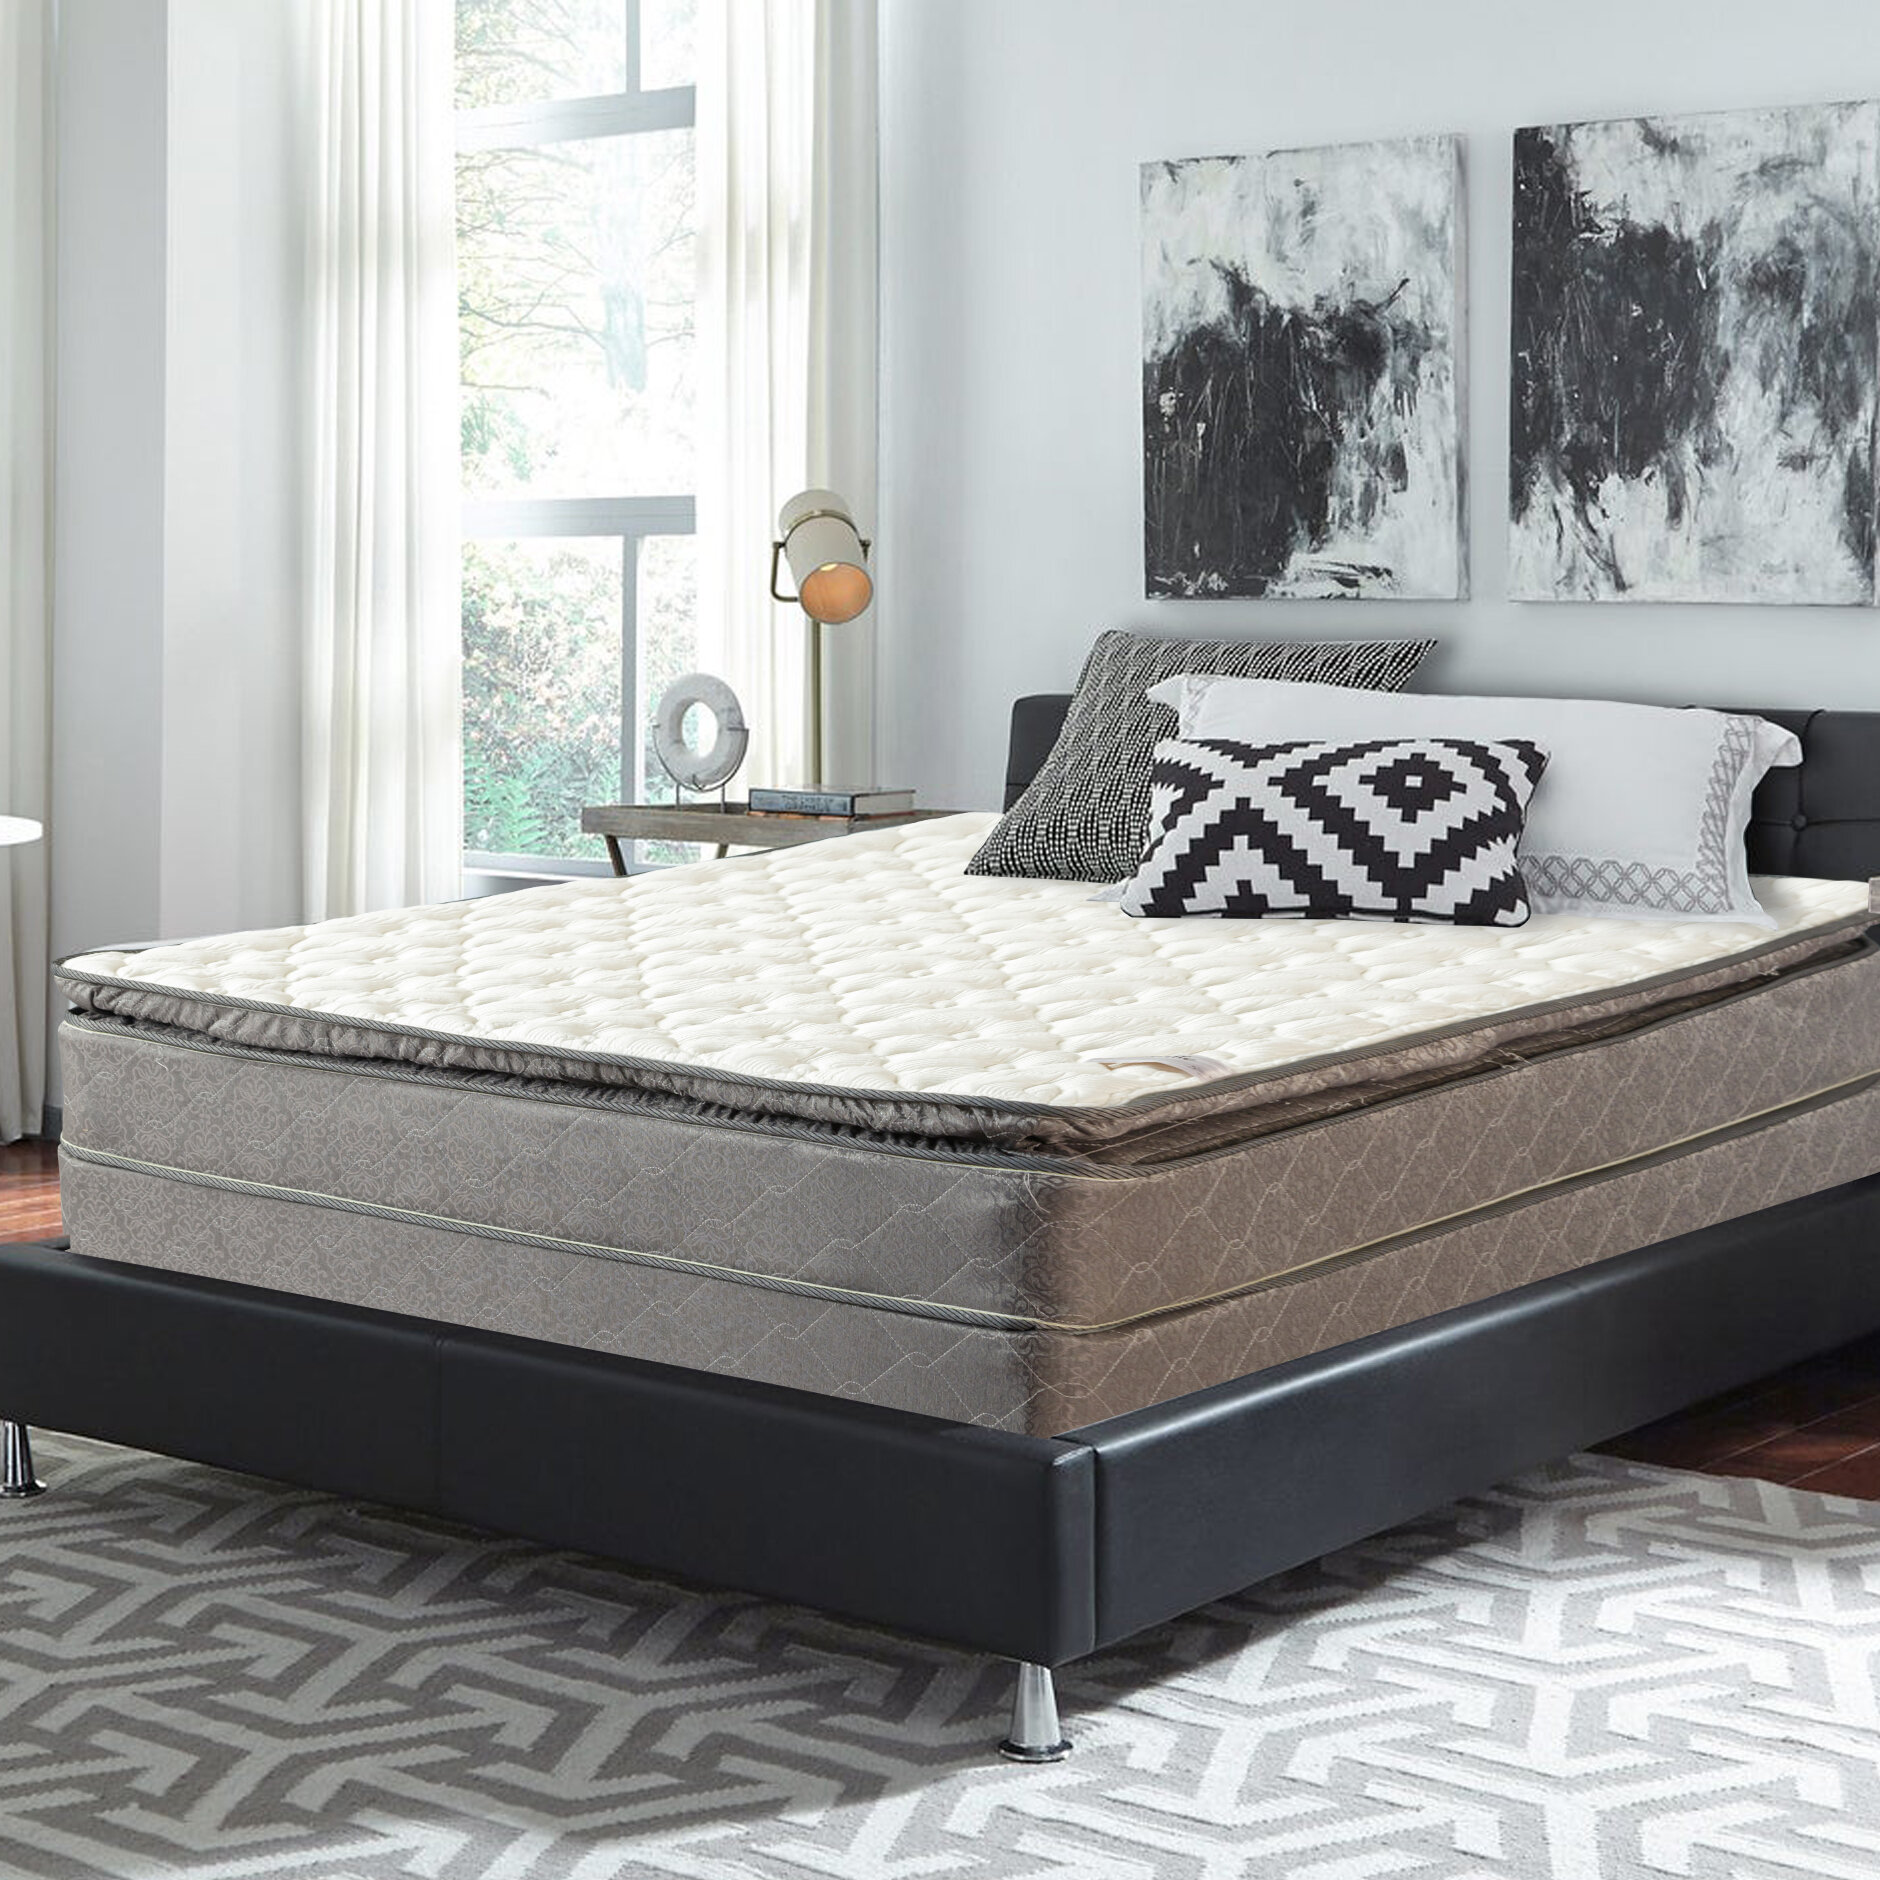 Spinal Solution 10 Plush Pillow Top Mattress And Box Spring Reviews Wayfair